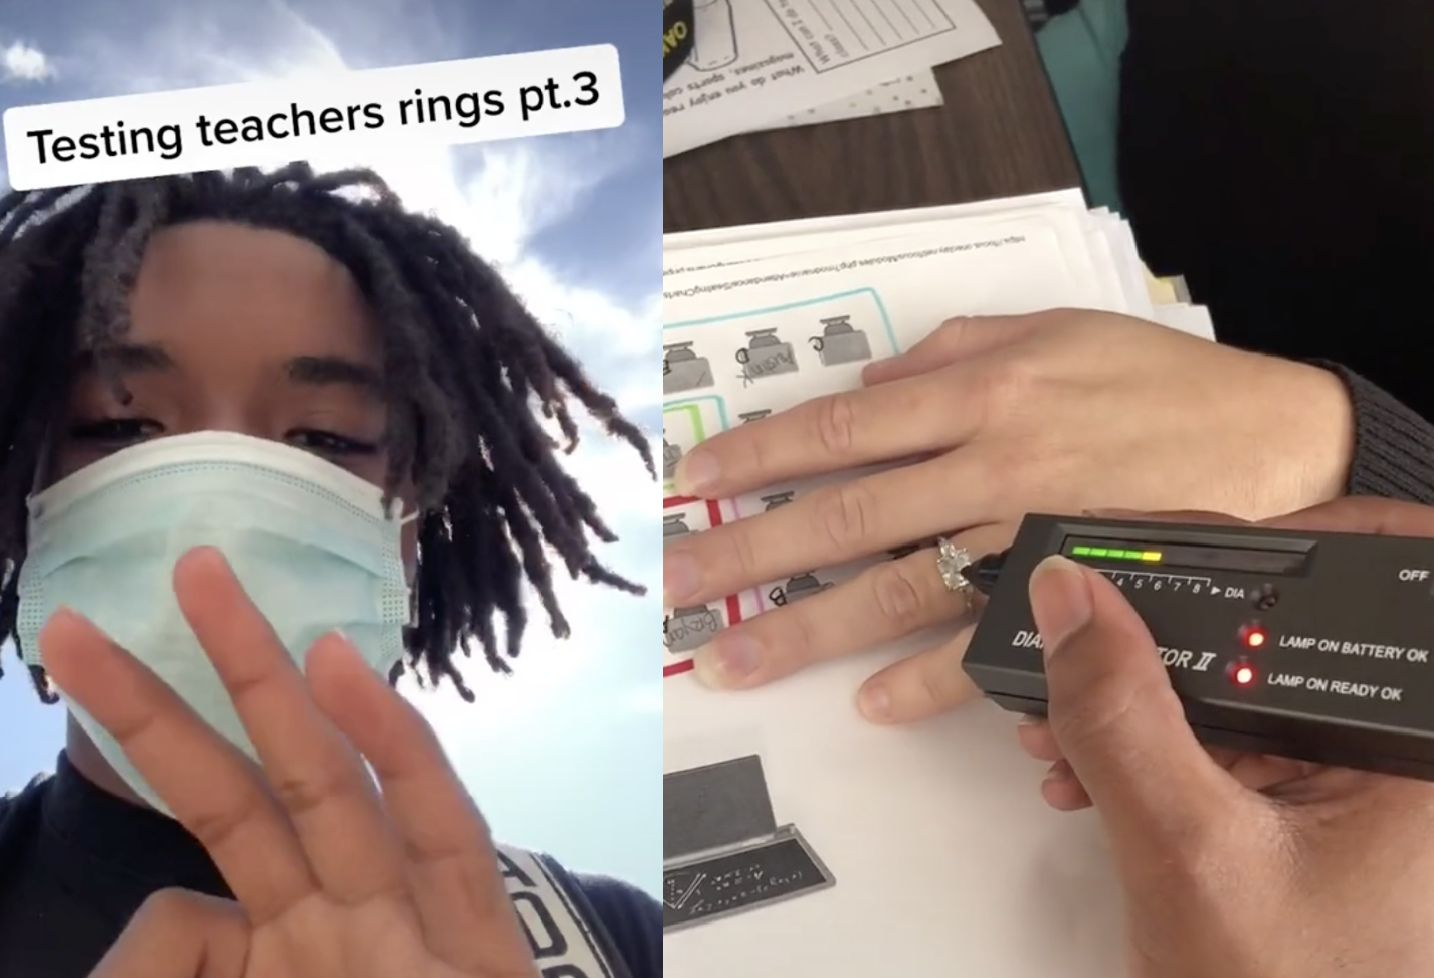 High school student sparks chaos by testing teachers' engagement rings to see if they're real